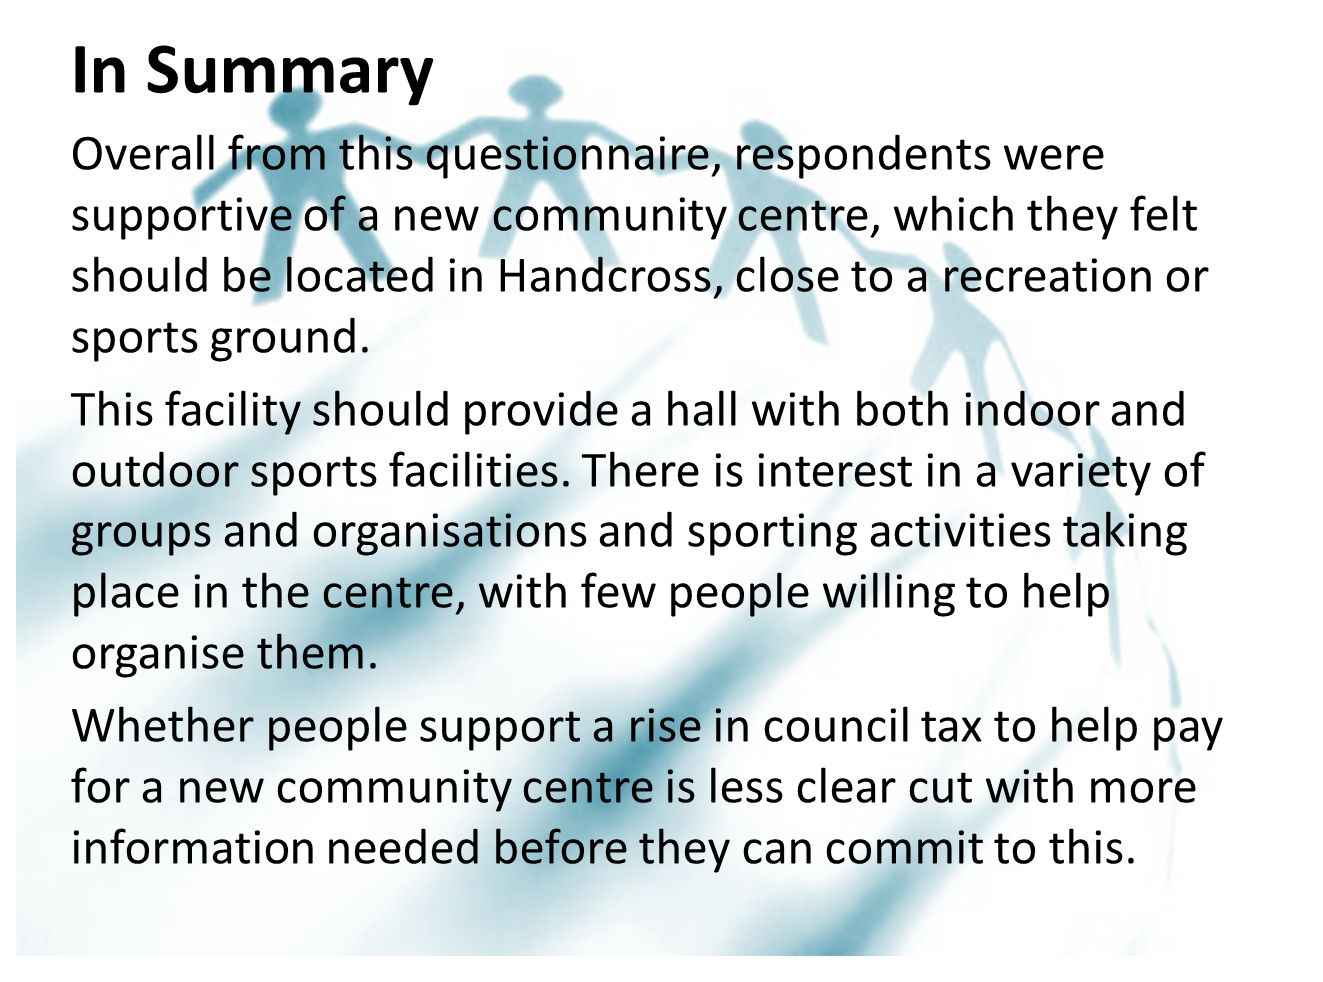 Overall from this questionnaire, respondents were supportive of a new community centre, which they felt should be located in Handcross, close to a recreation or sports ground.